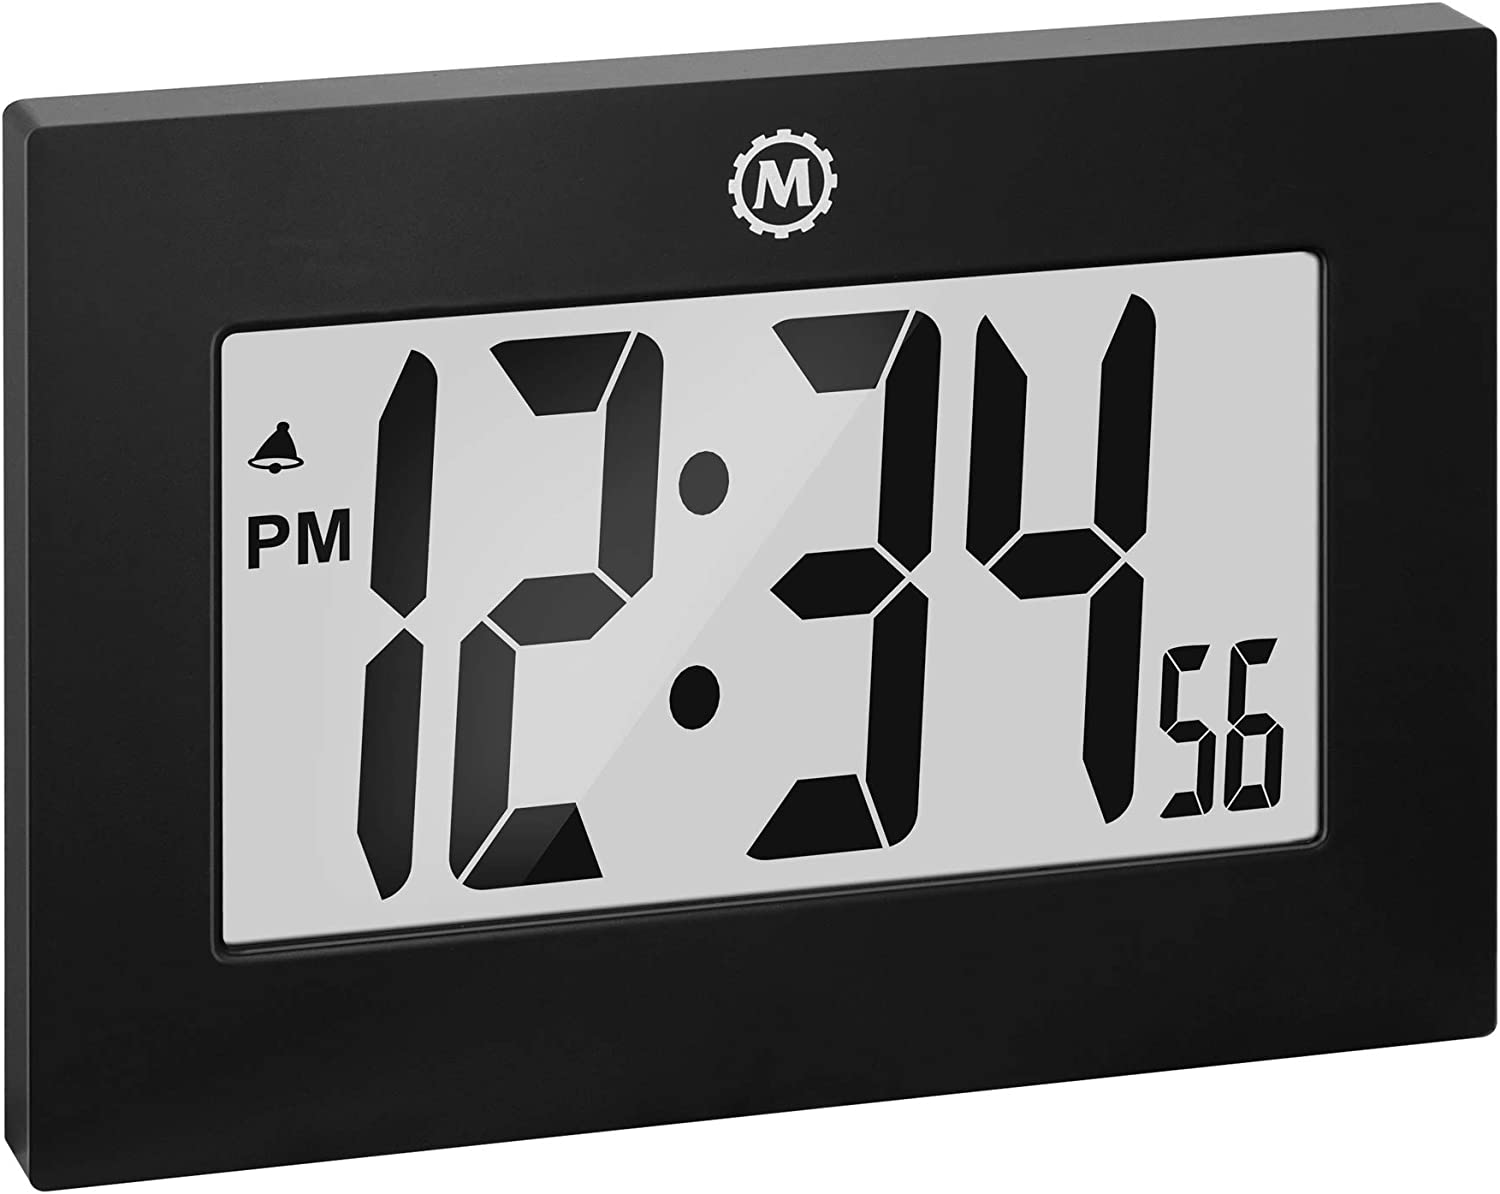 Marathon CL030064 Large Digital Regular discount Wall Fold-Out Table Nippon regular agency S with Clock